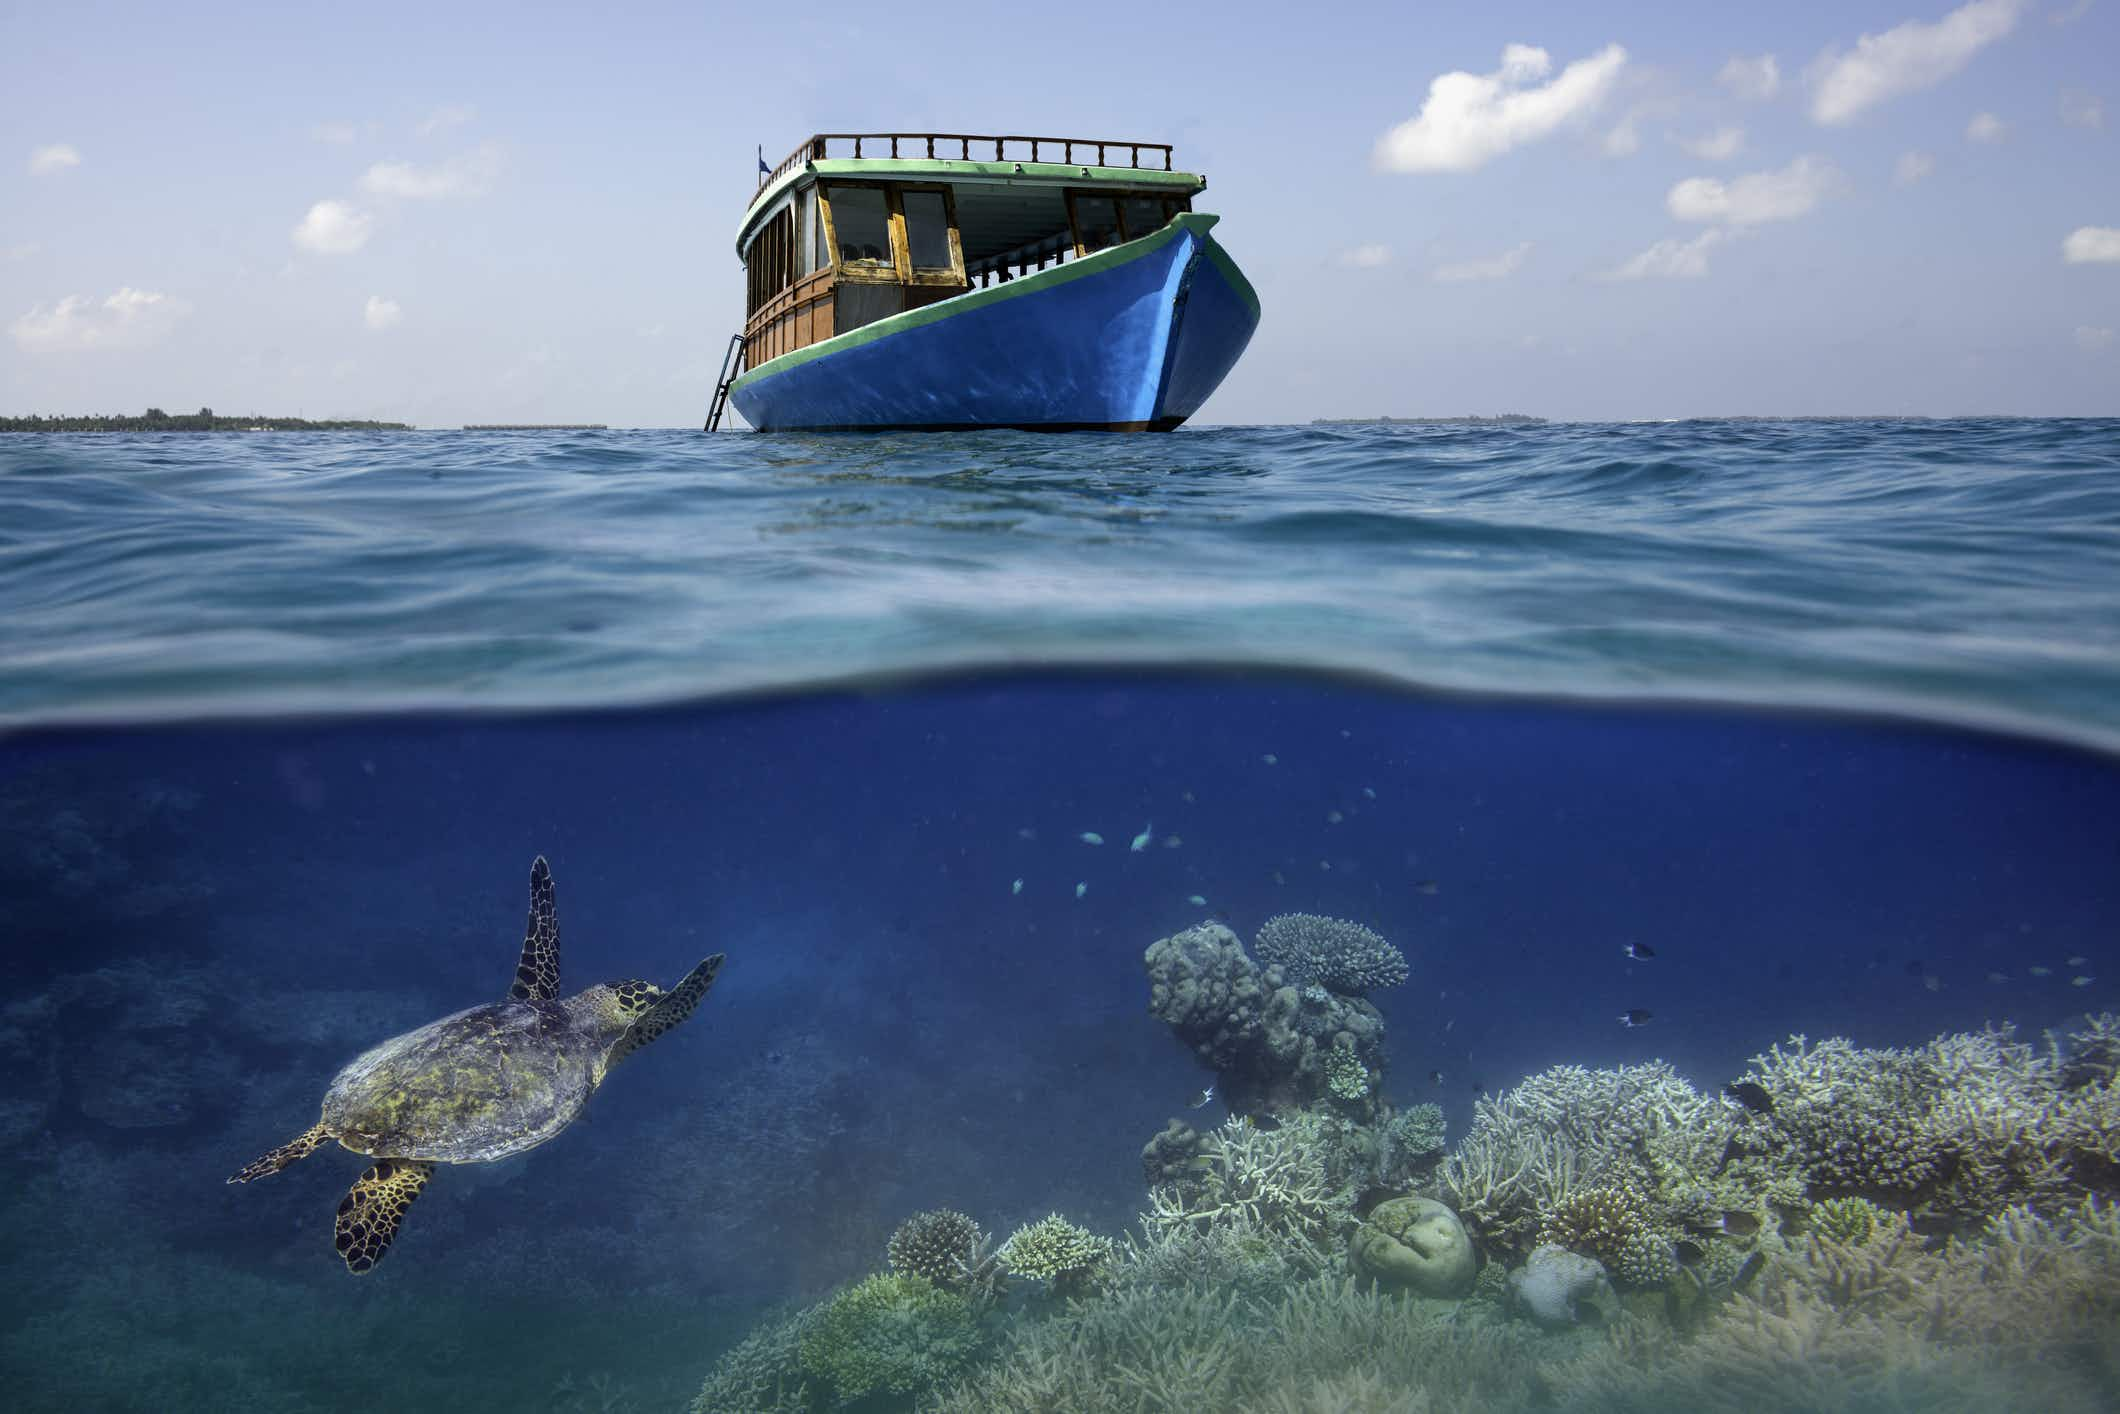 New nature parks to open on Maldives islands of Addu and Fuvahmulah in June